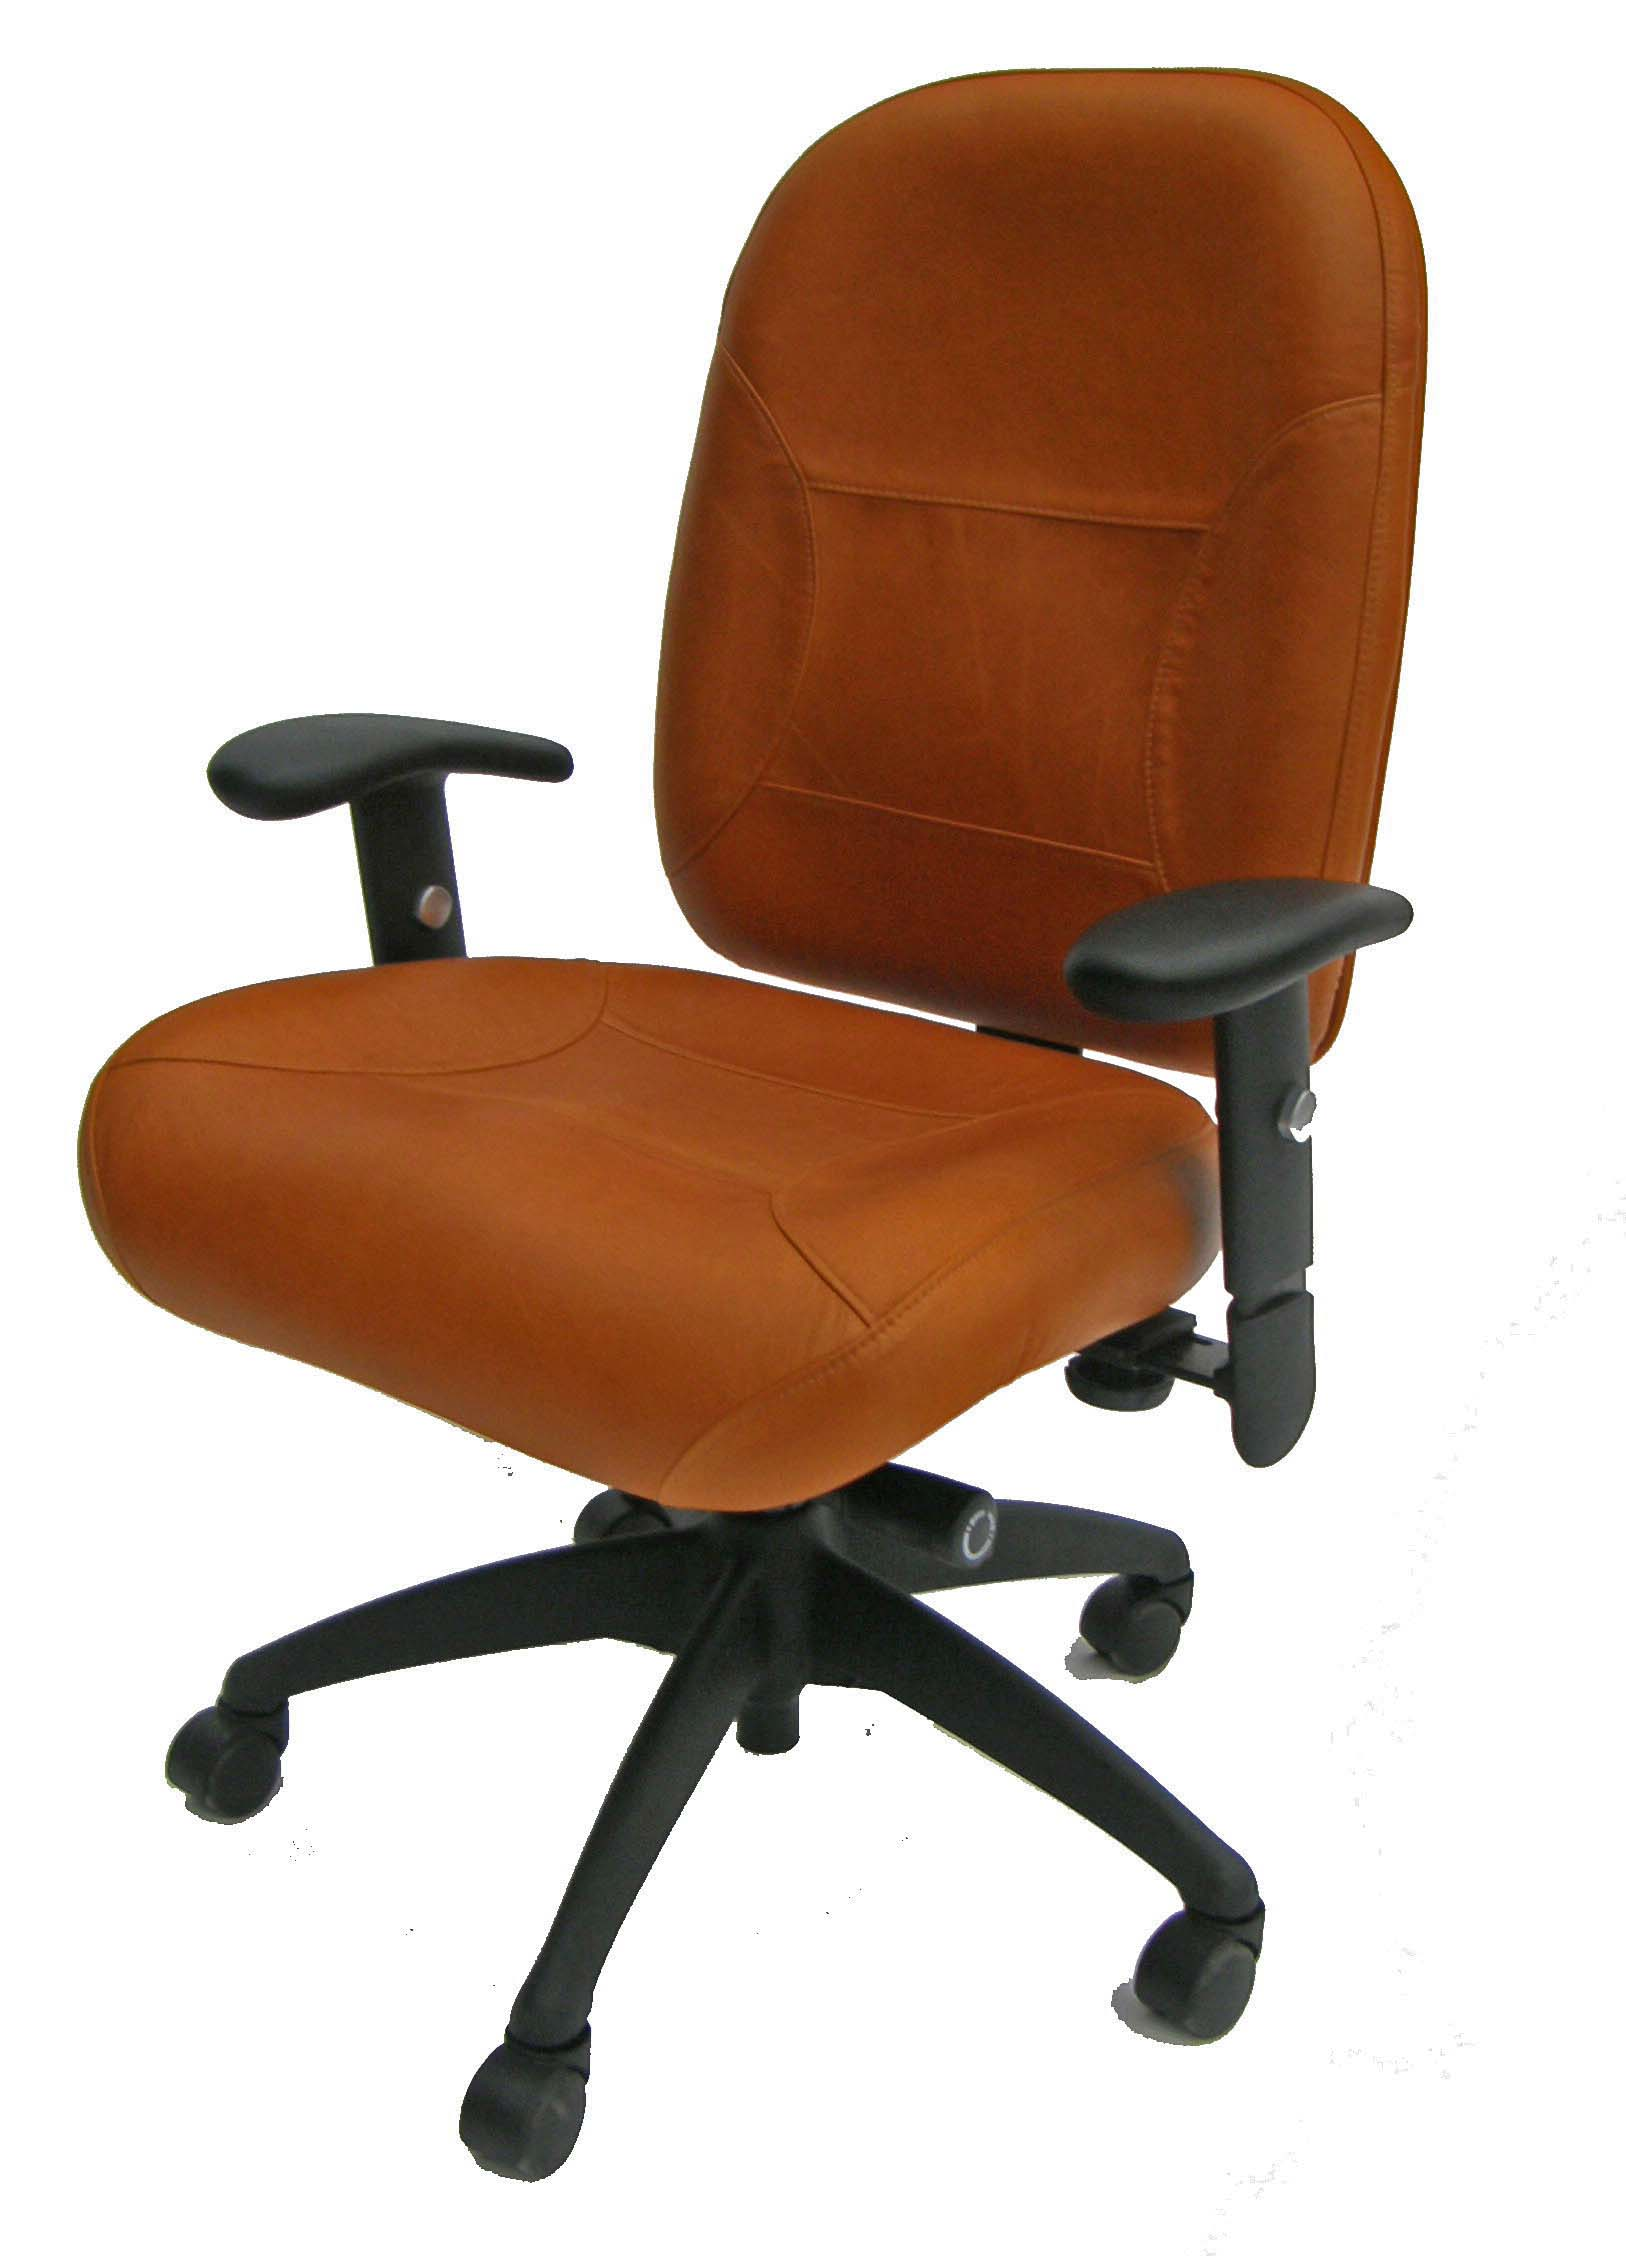 baseball glove chair home goods canvas deck chairs mvp extreme ergonomic tan leather champion